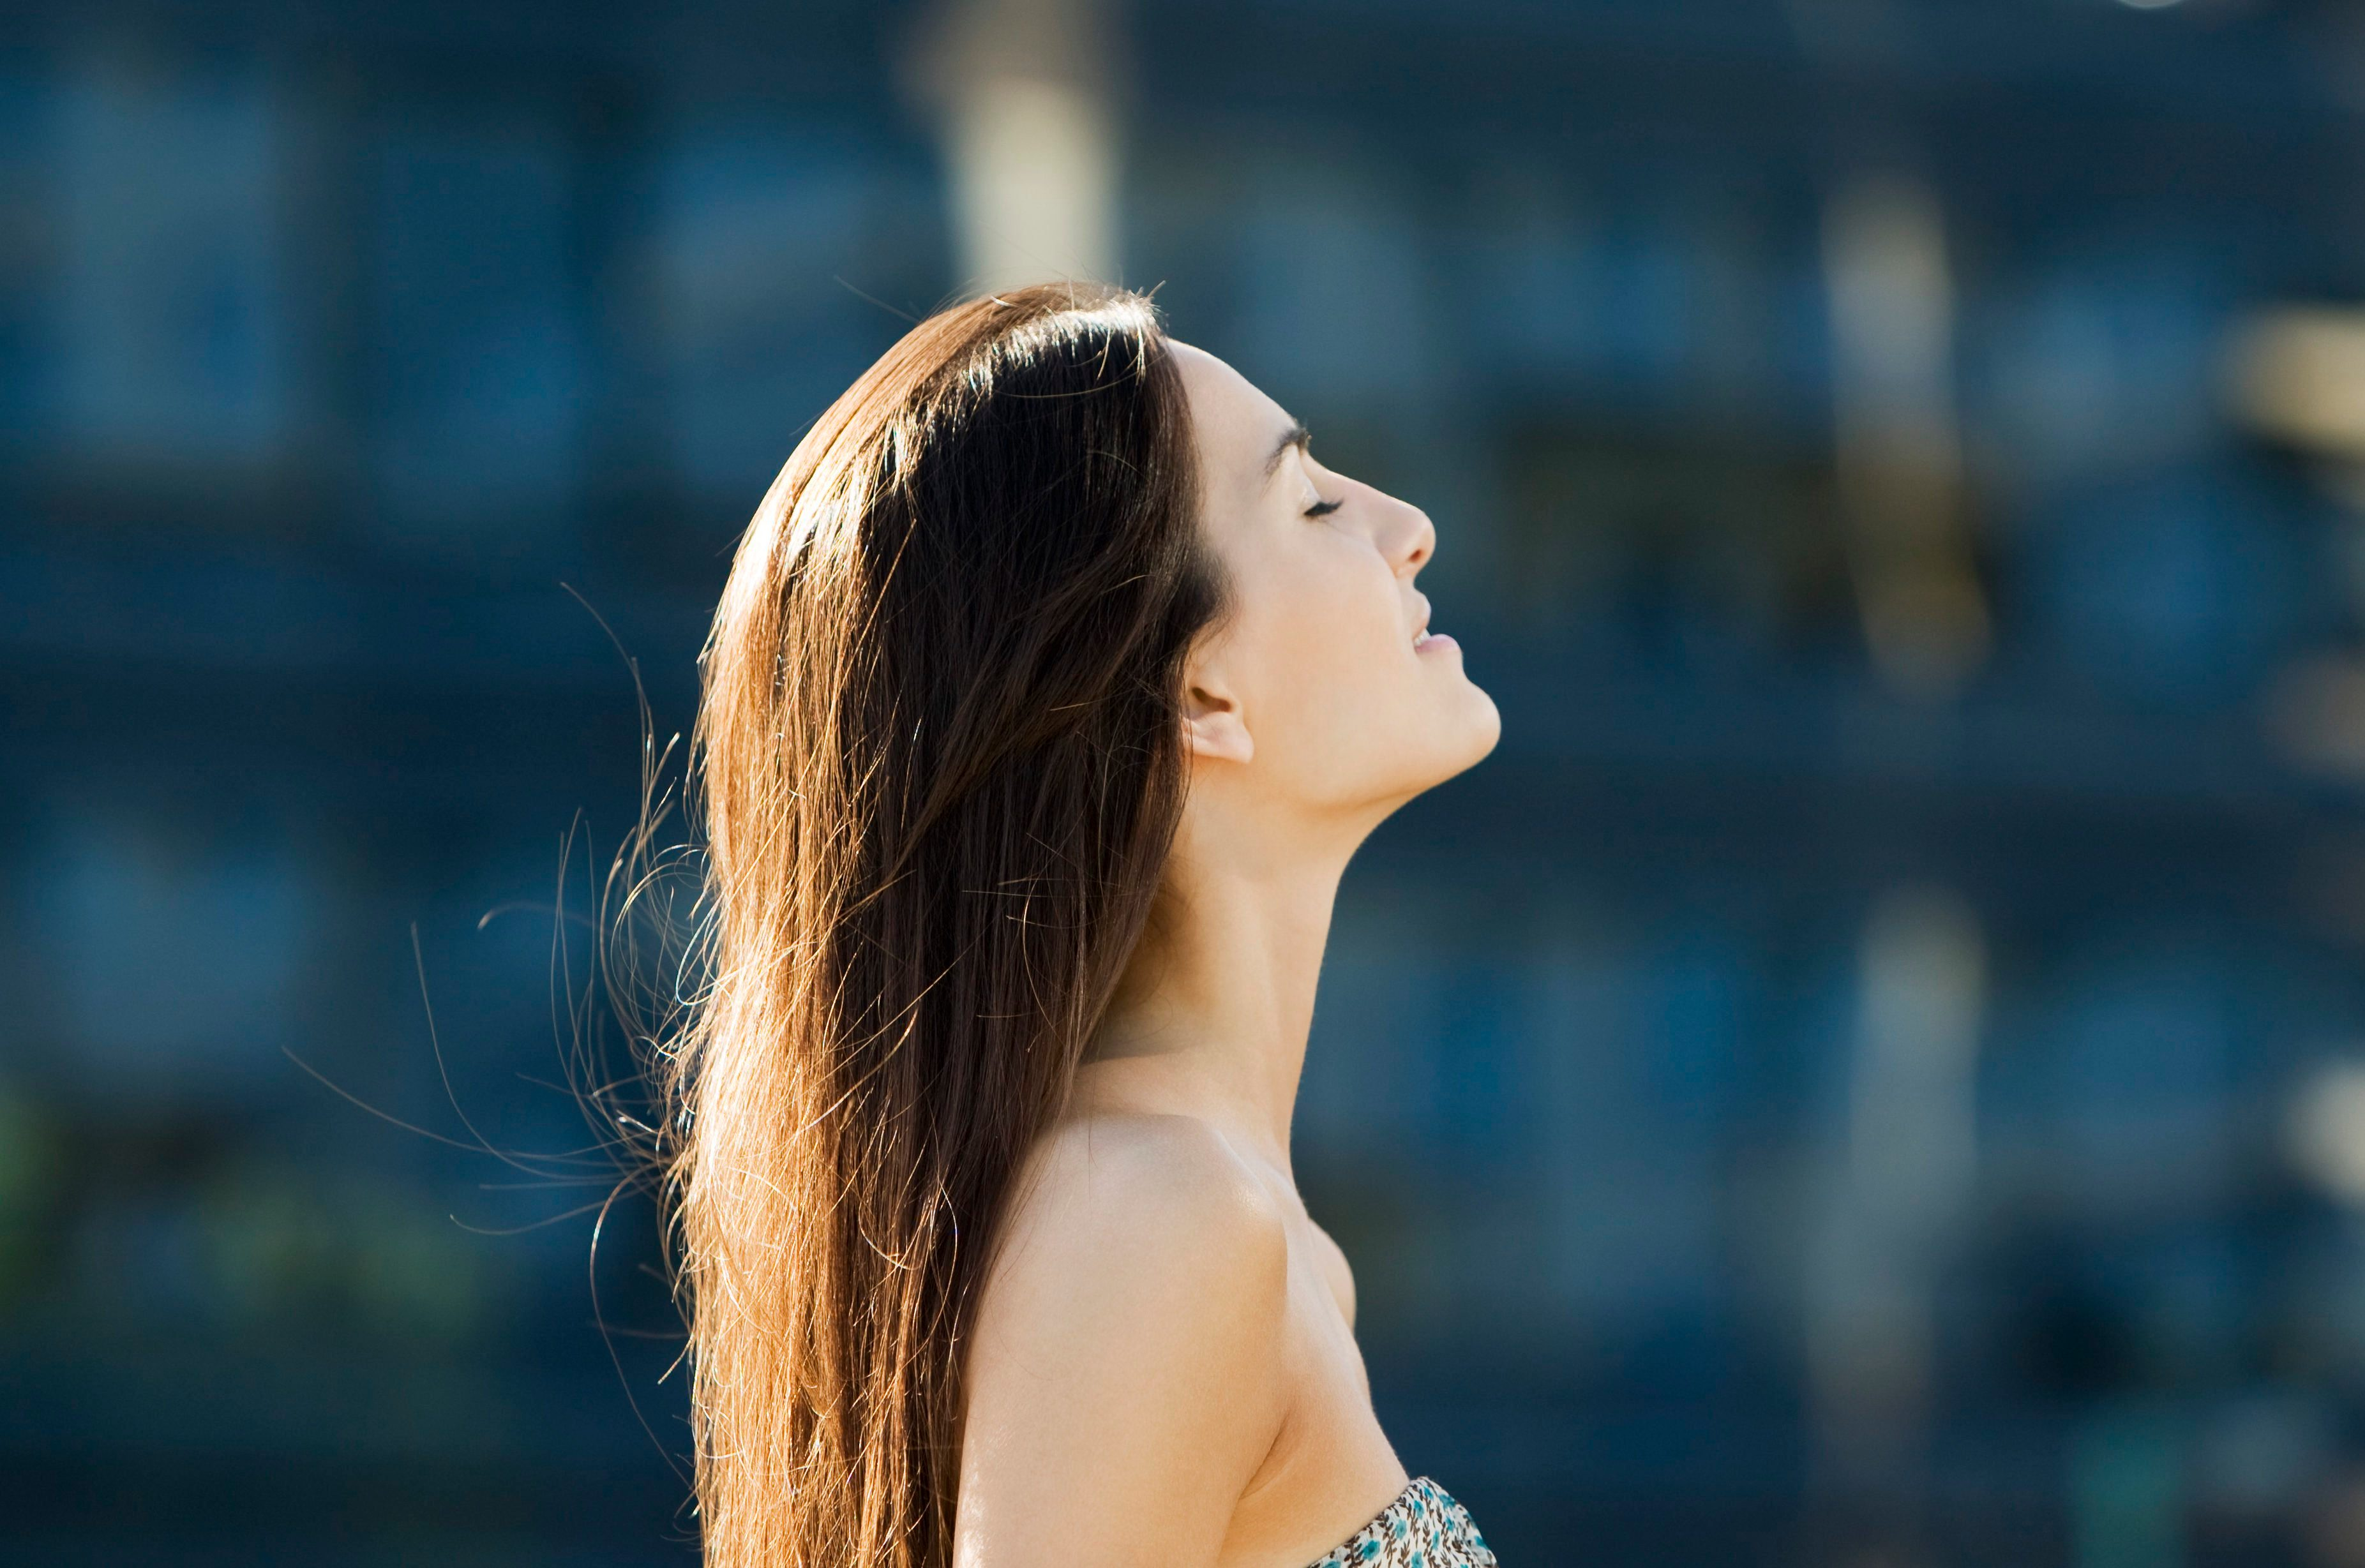 Young woman outdoors on sunny day, head back, eyes closed